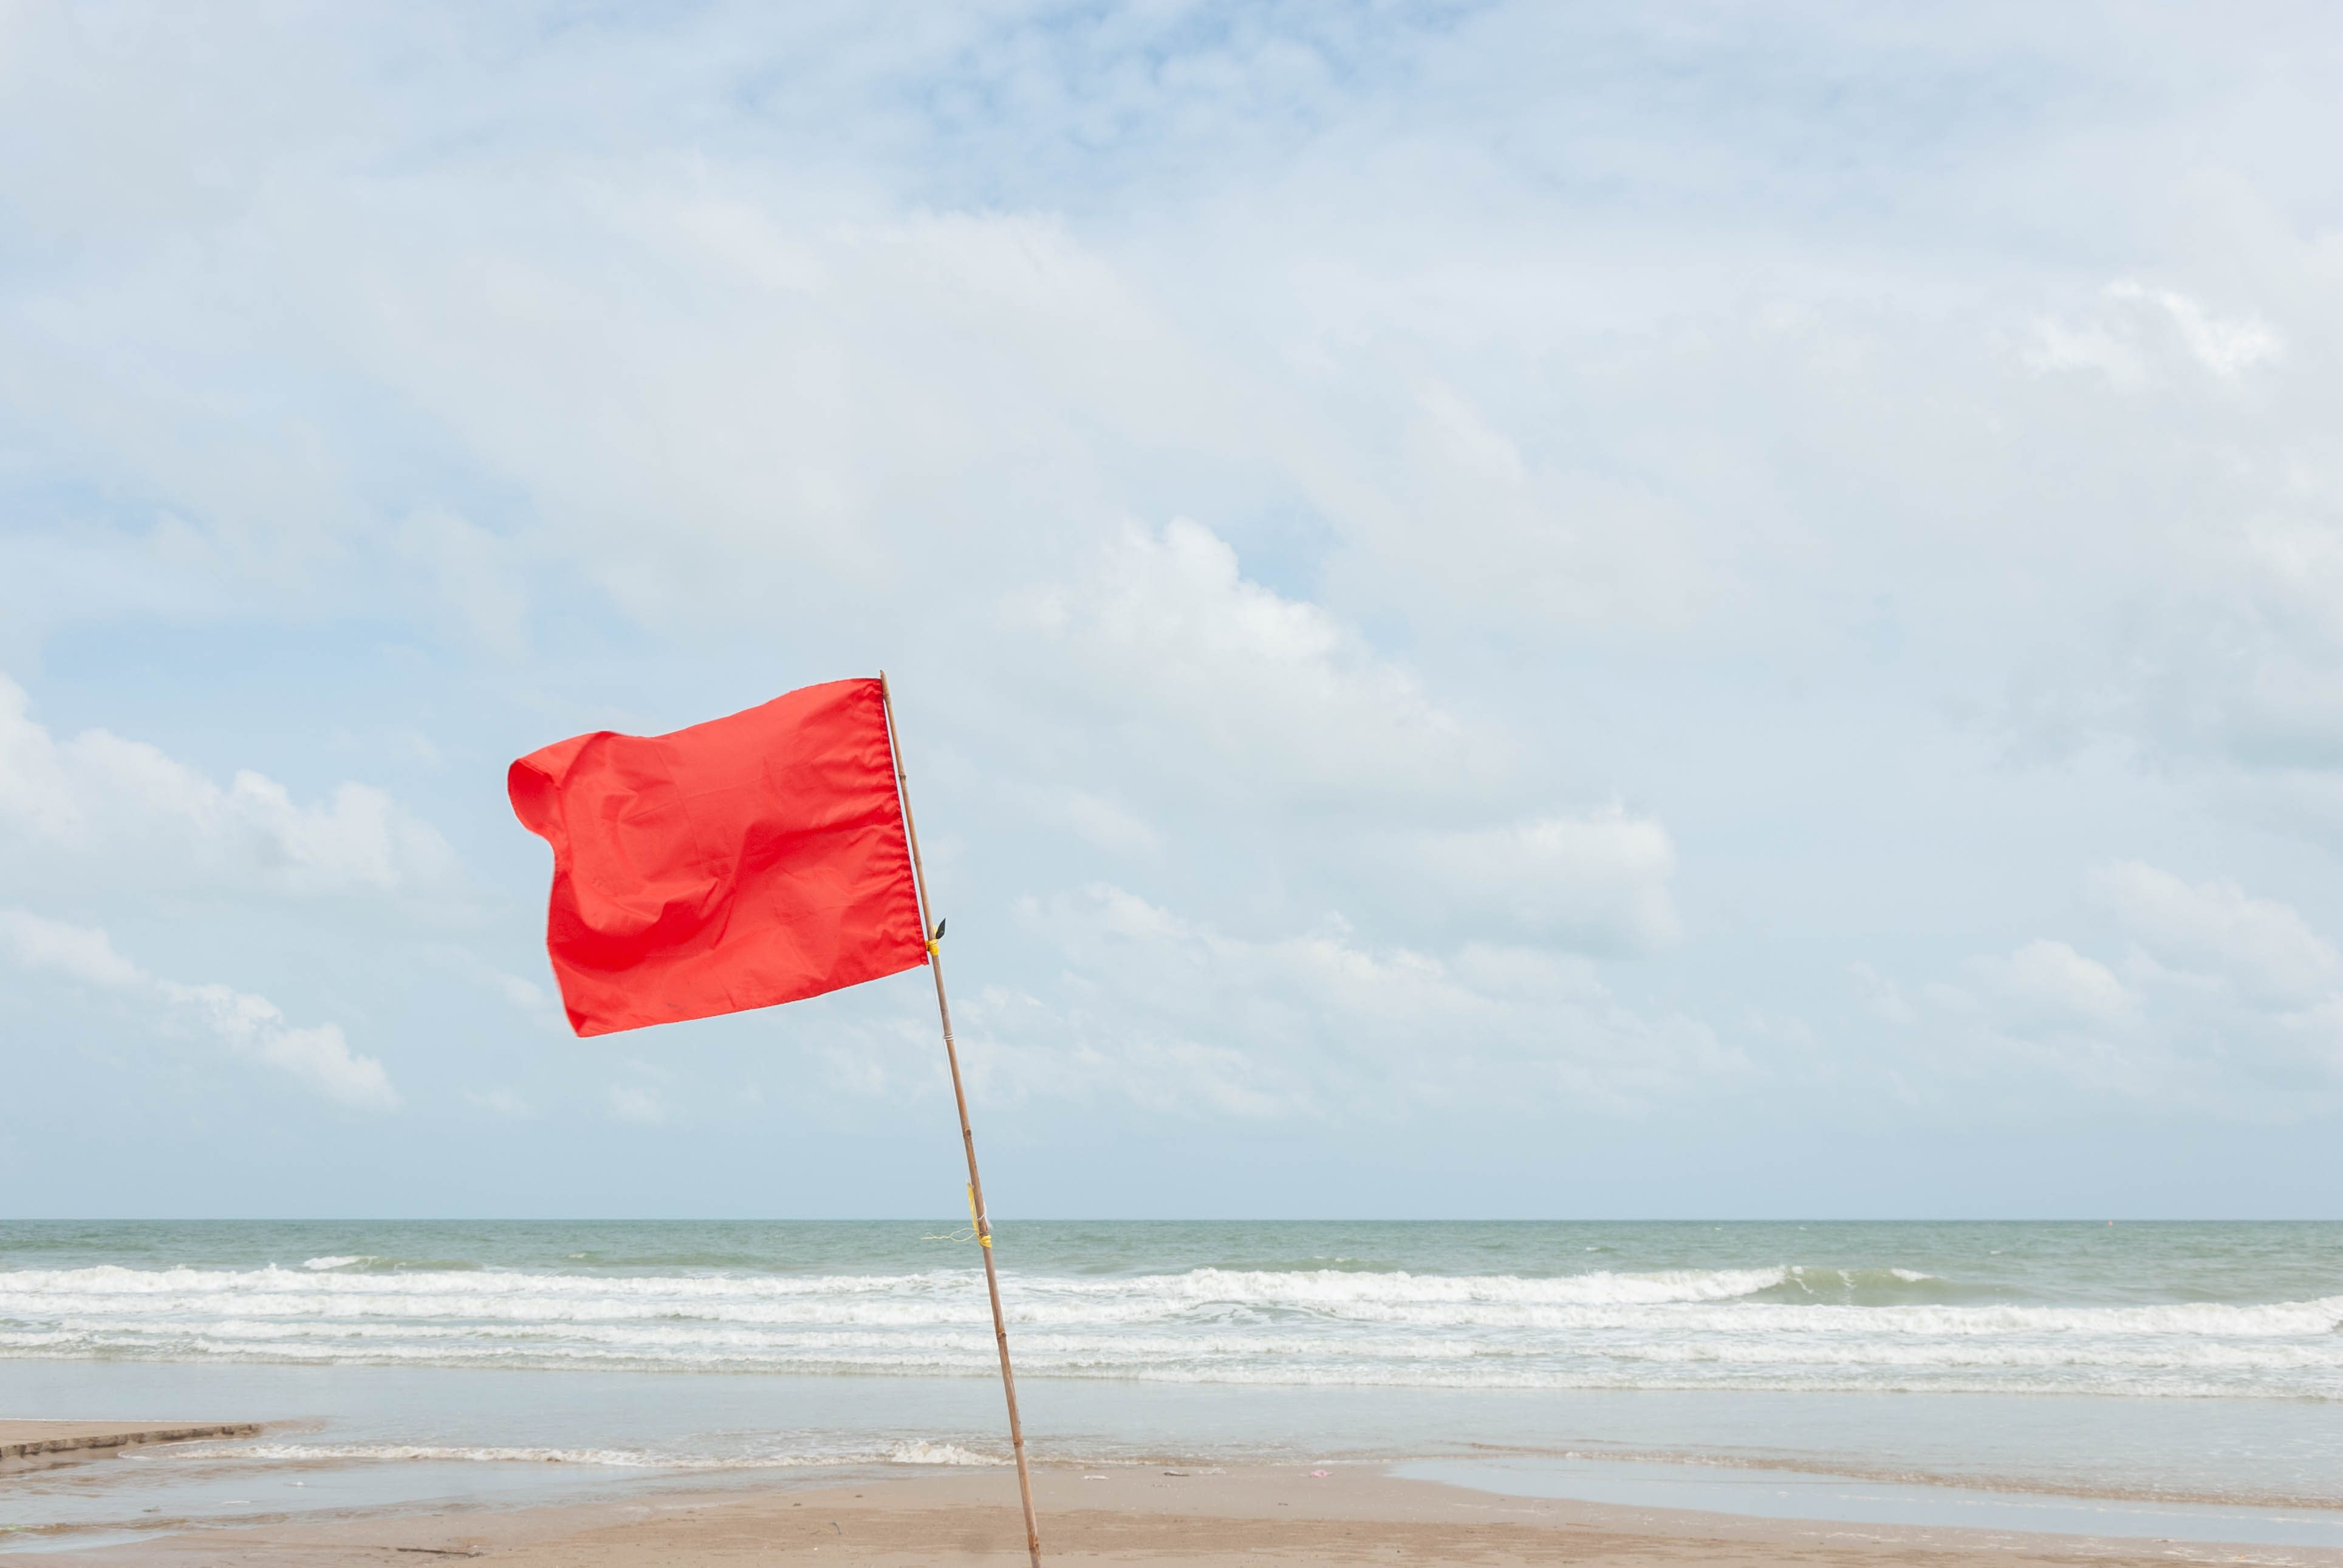 Red flag warns not to play water.